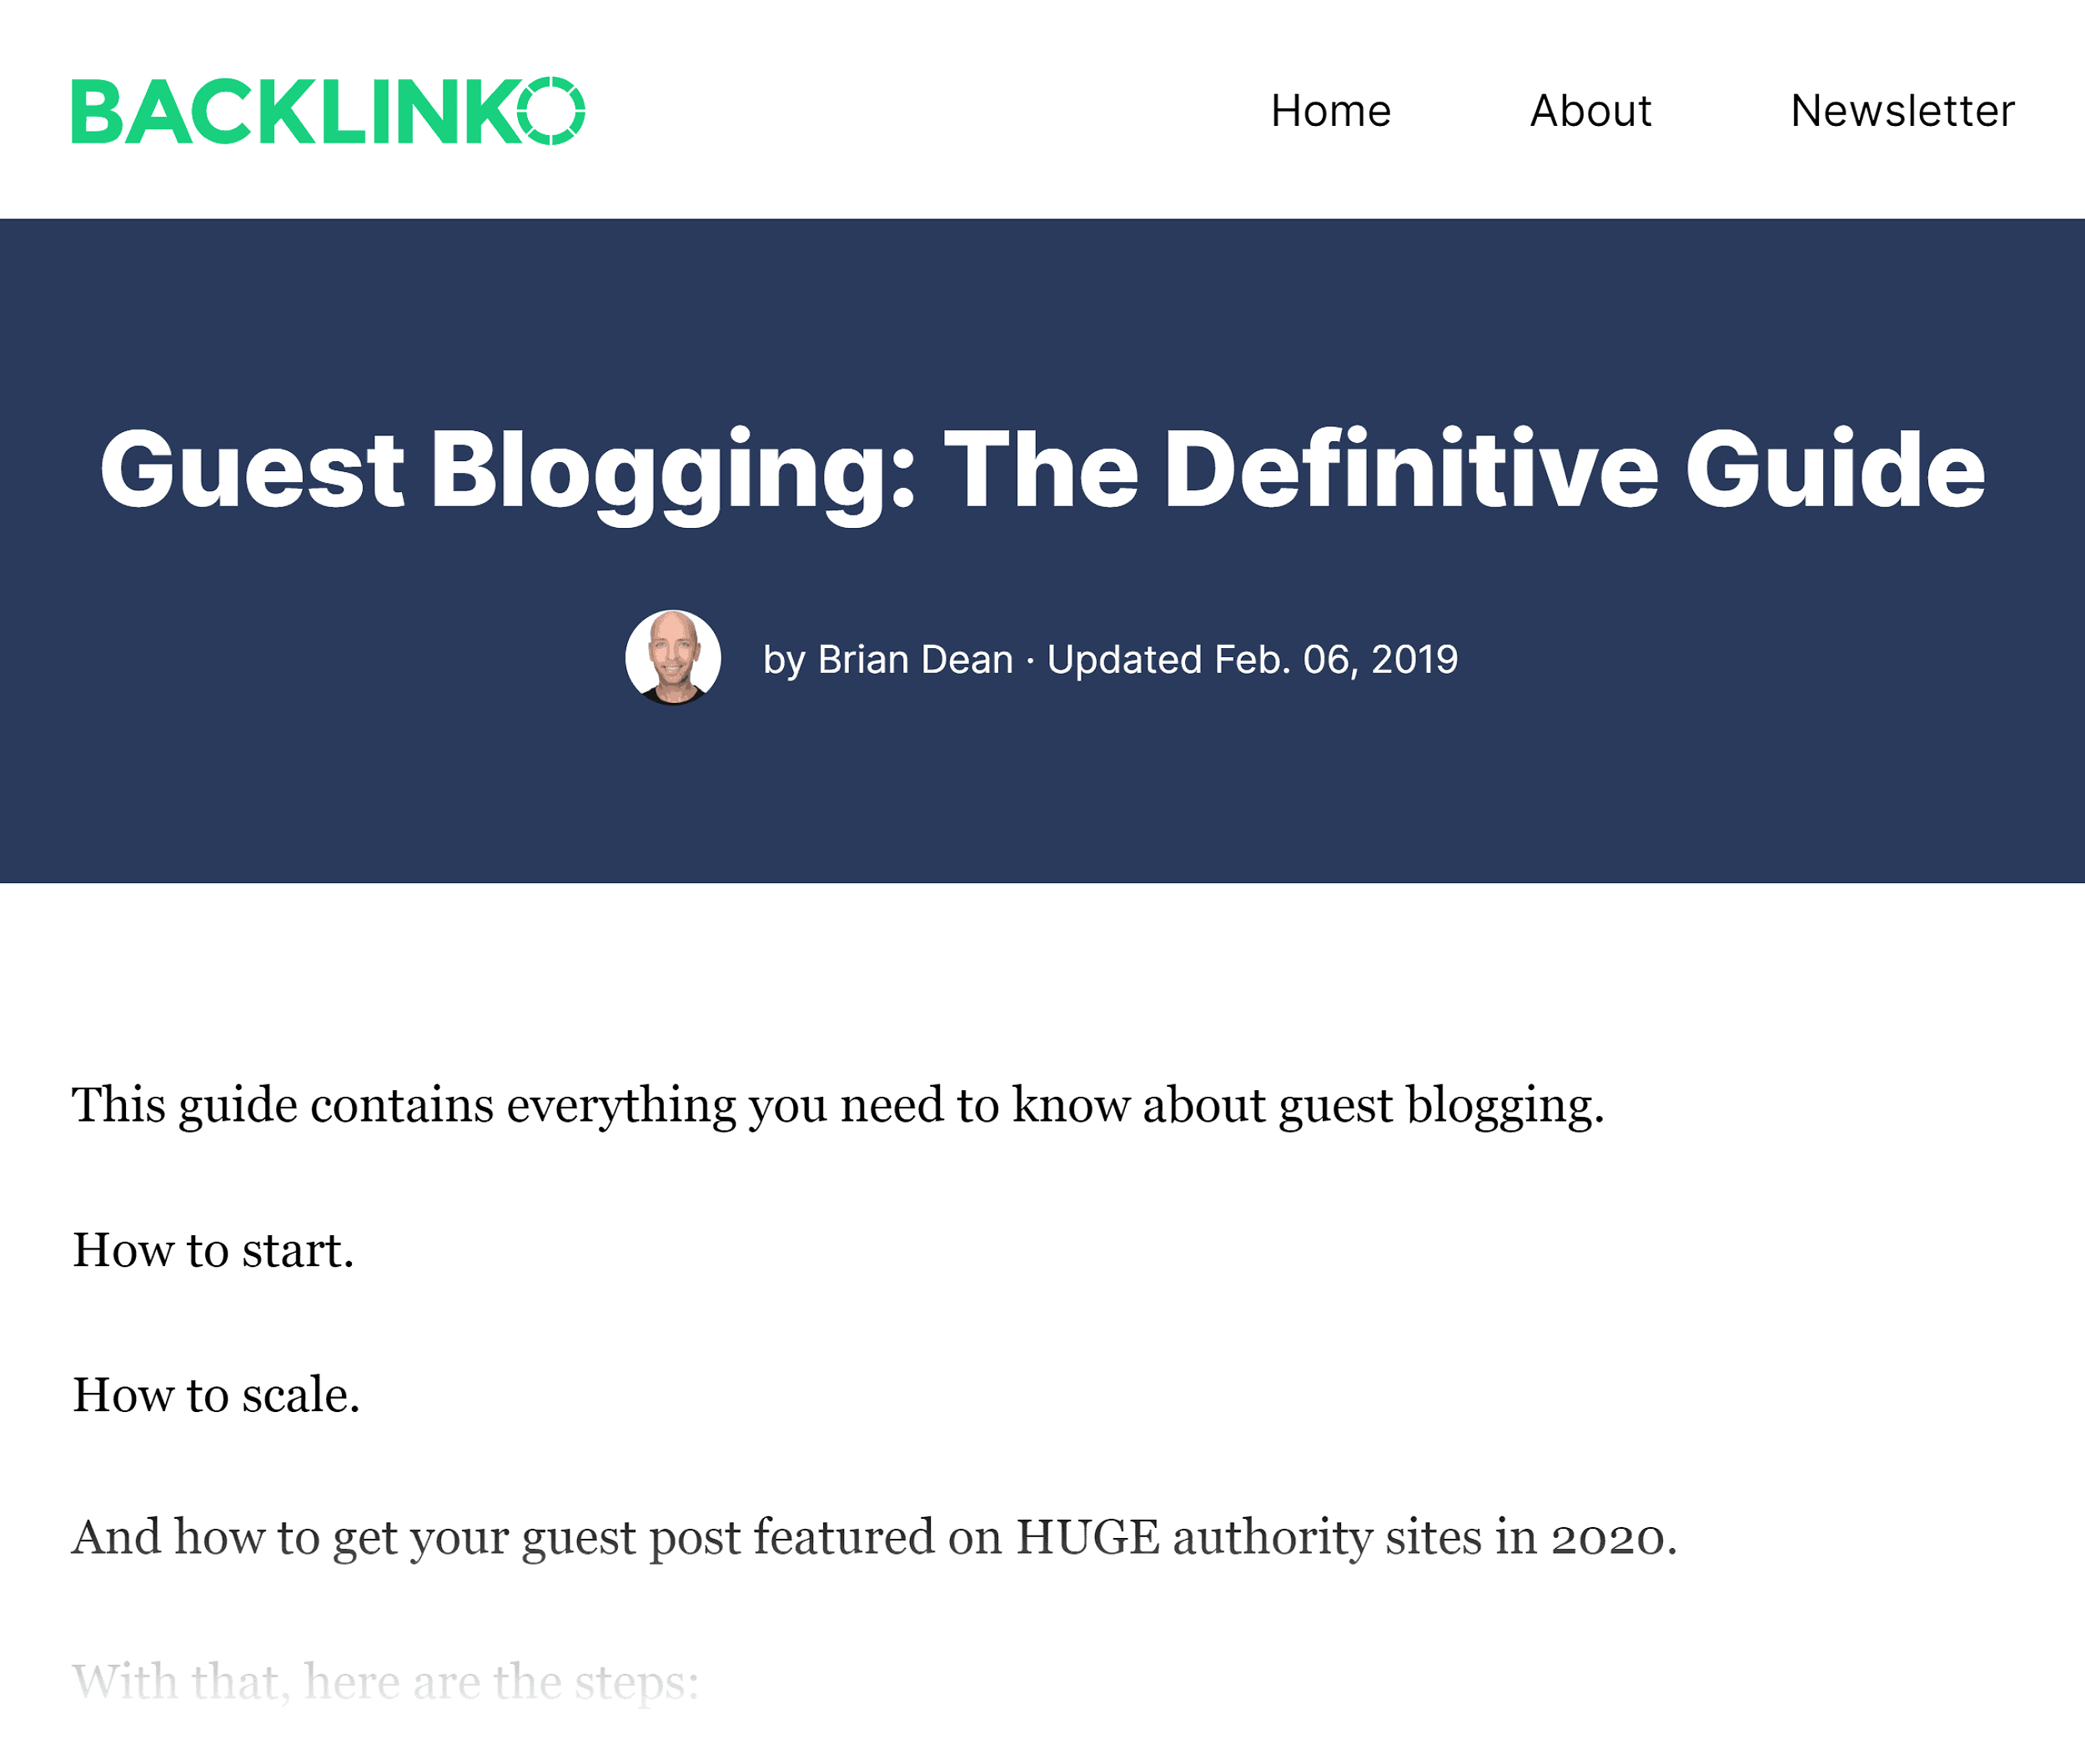 Backlinko – The Definitive Guide to Guest Blogging